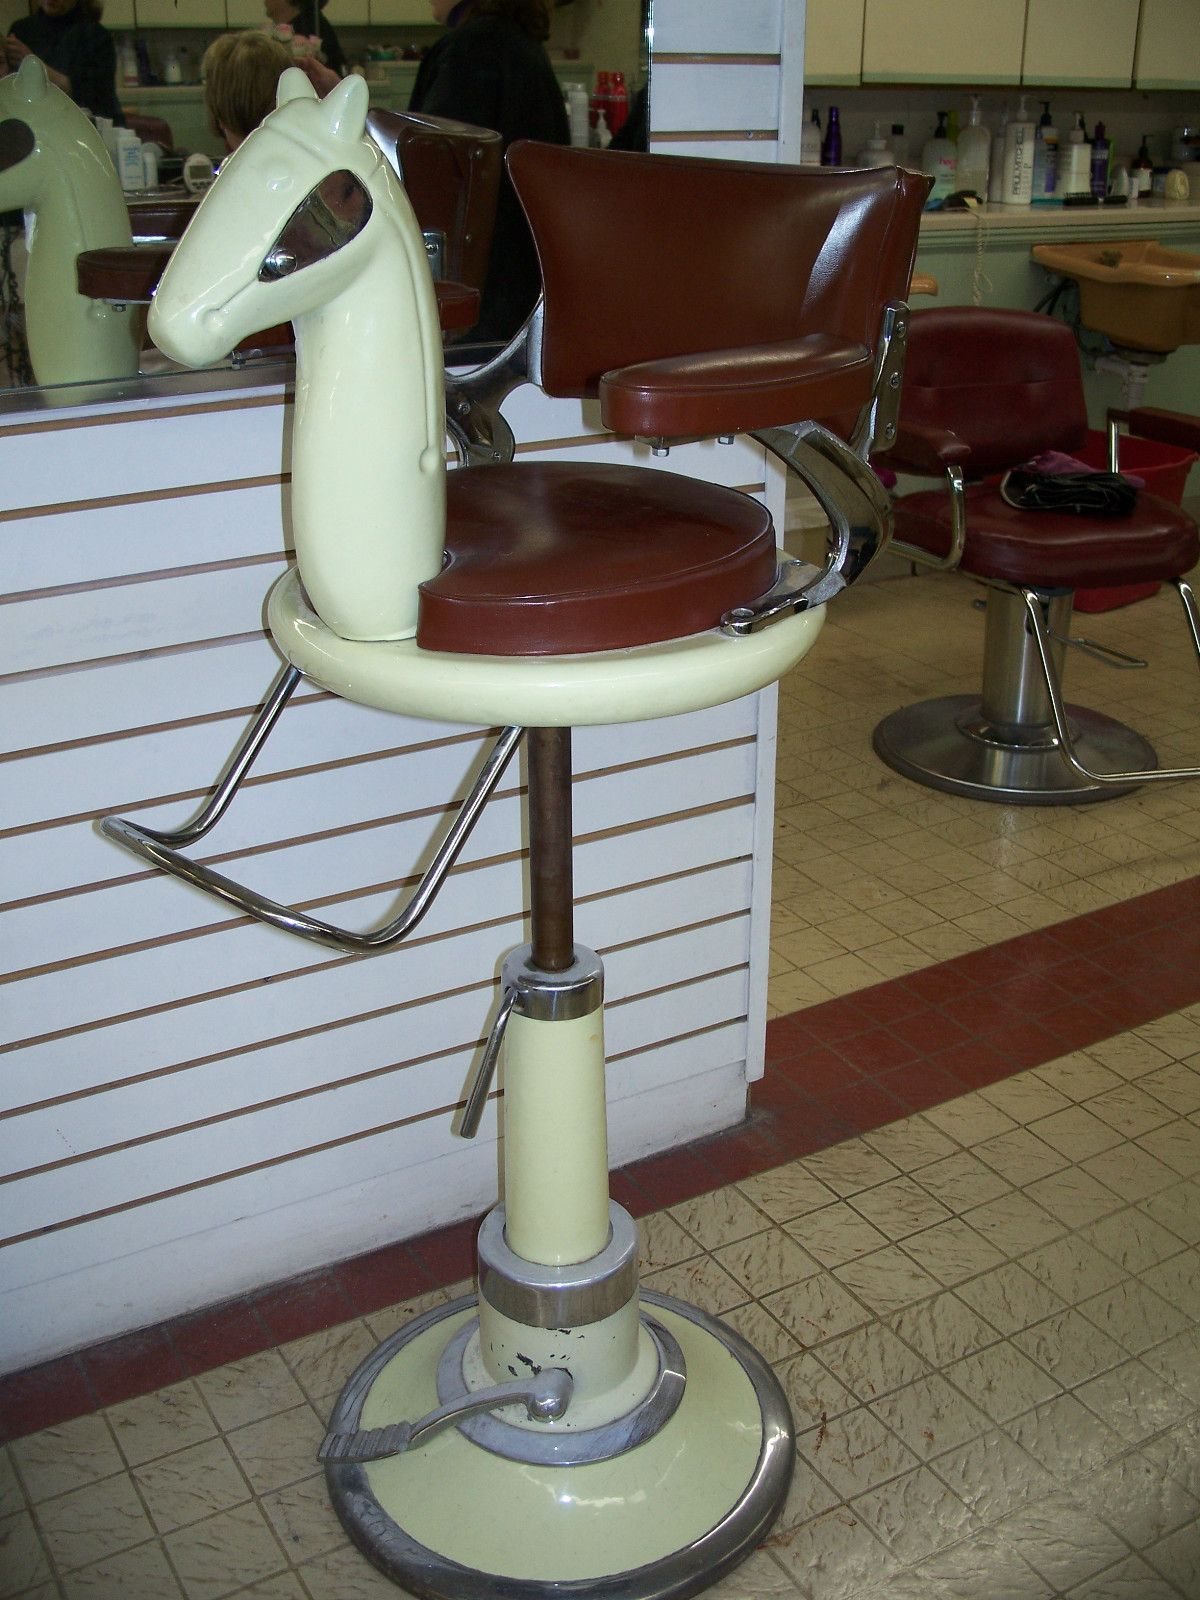 Barber shop pole distressed wall decal vintage style wall decor ebay - Vintage Child S Horse Head Barber Chair 1950 S